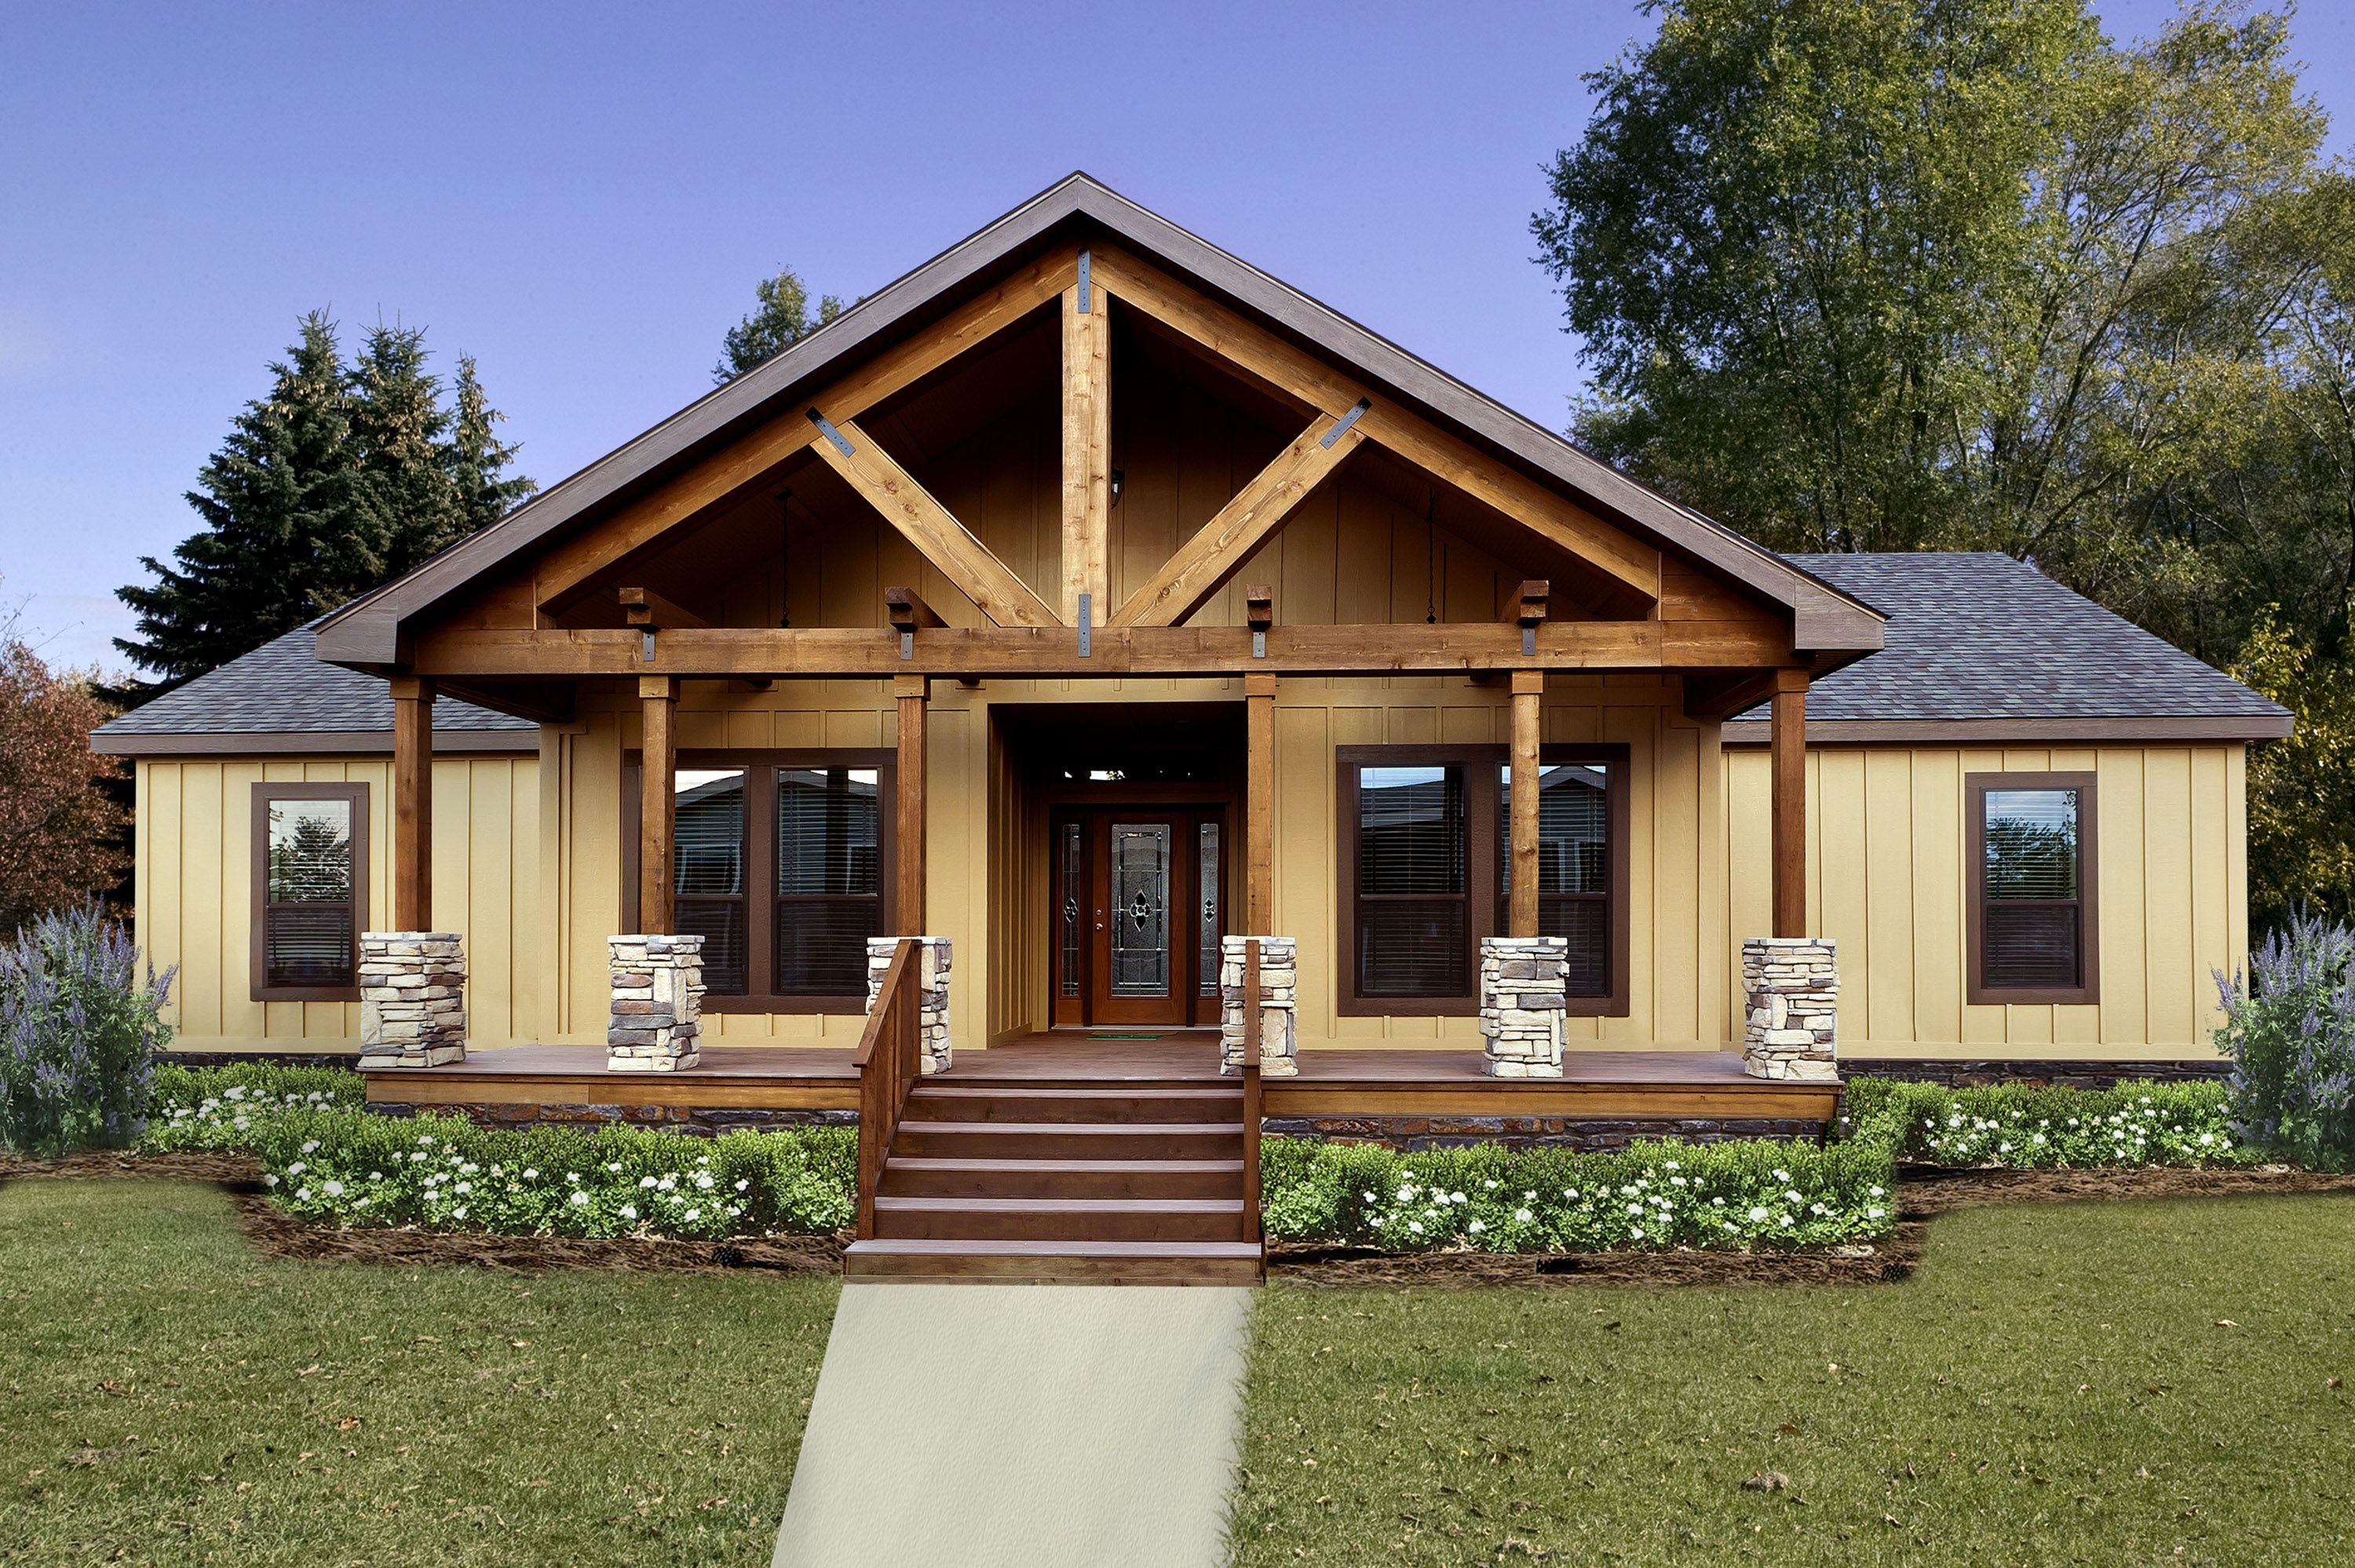 Craftsman Style House Plan 59146 With 3 Bed 2 Bath 2 Car Garage Craftsman House Plans Bungalow House Plans Craftsman Style House Plans